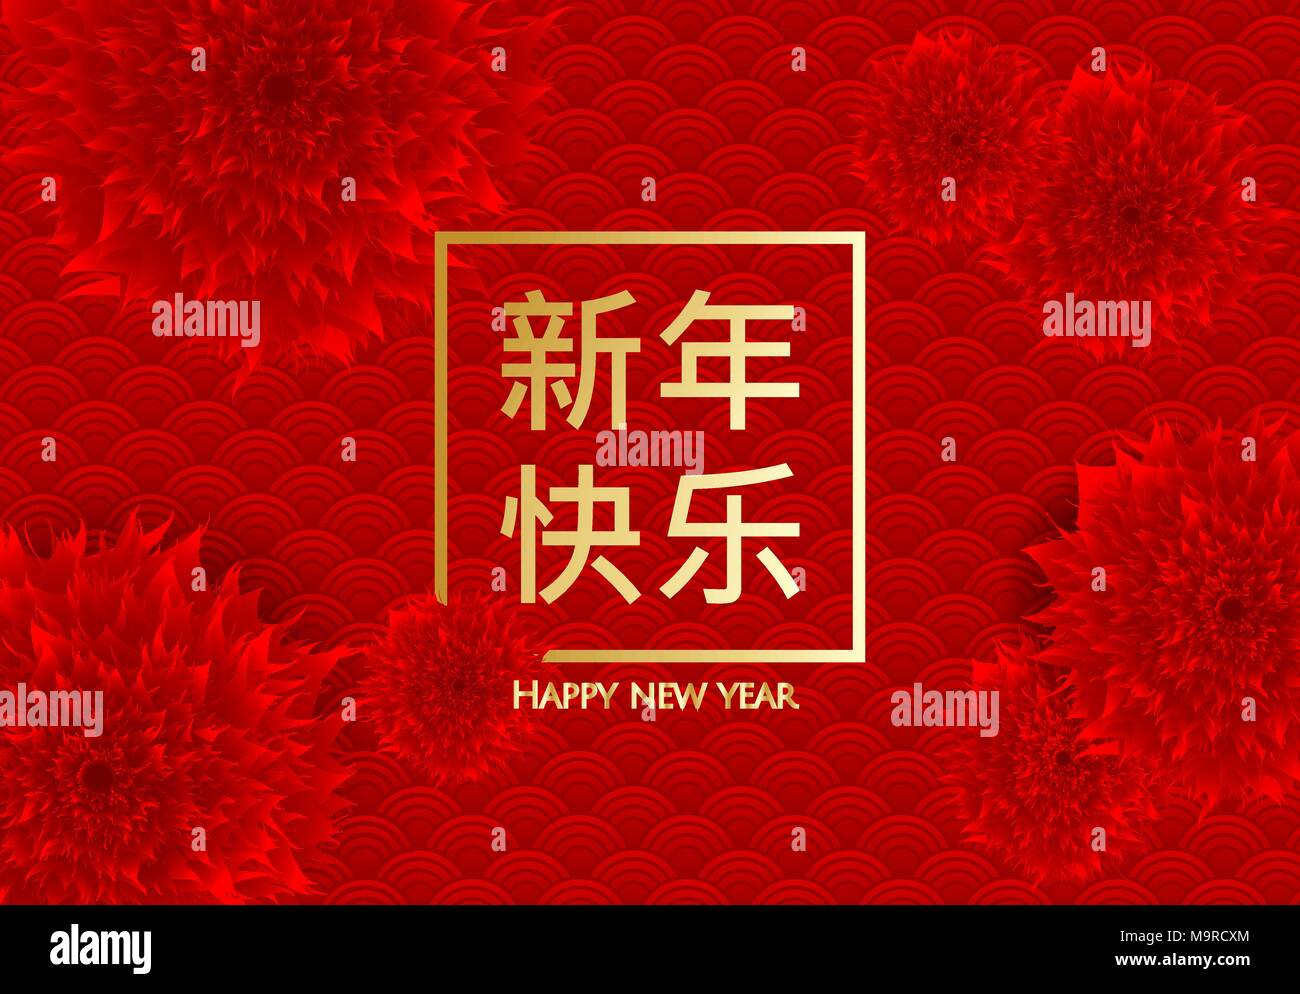 happy chinese new year greeting card design for your greetings card flyers invitation posters brochure banners calendar